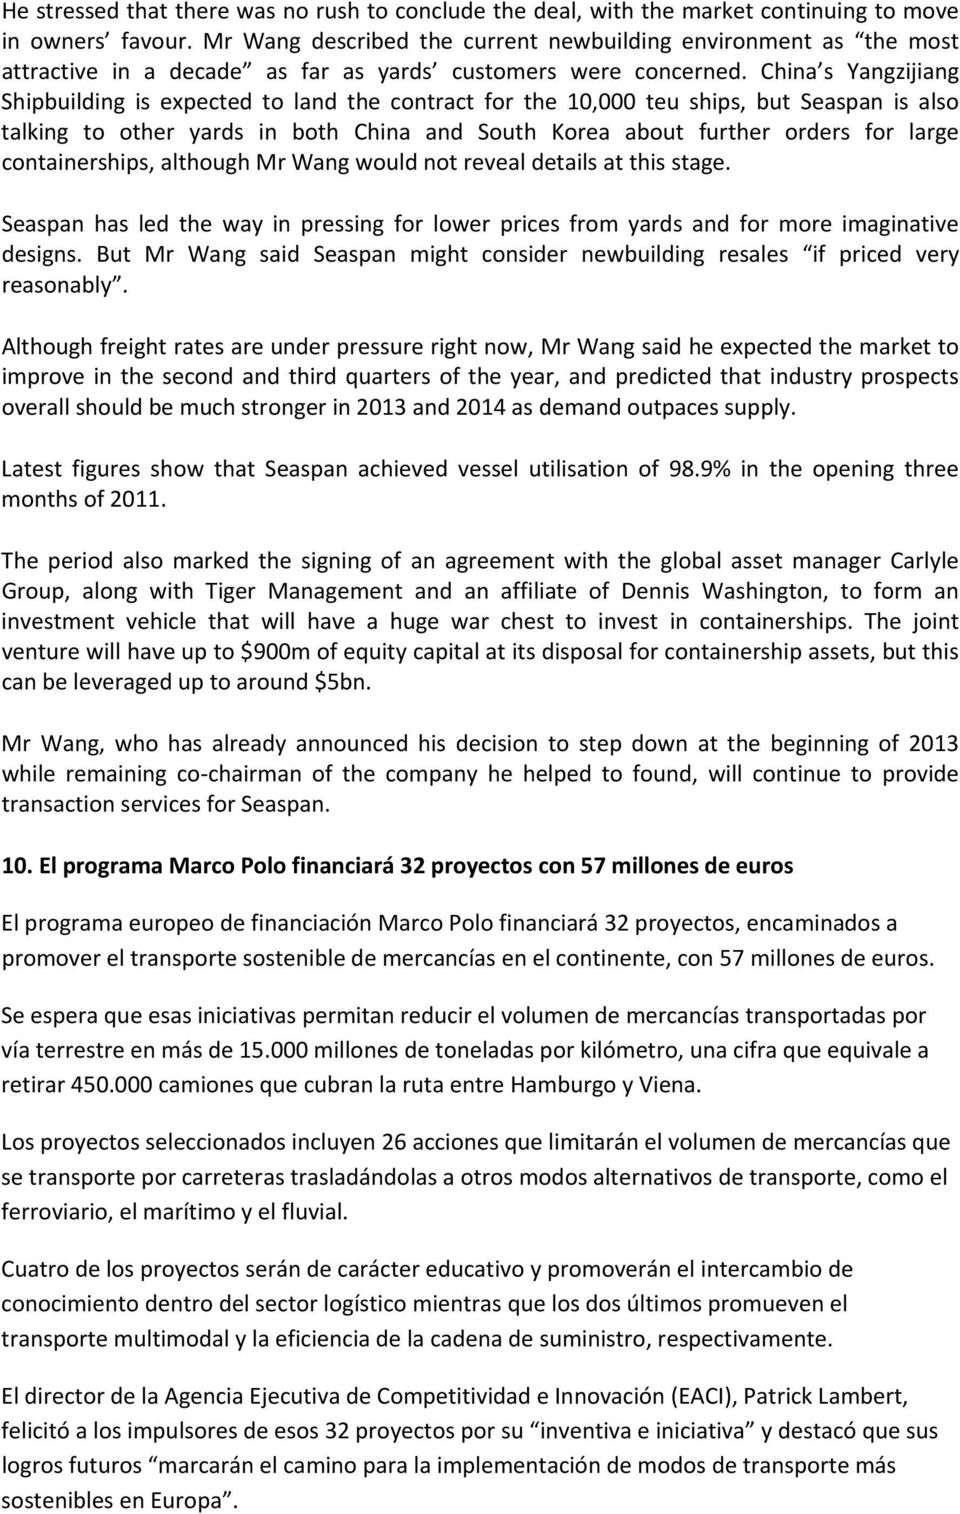 China s Yangzijiang Shipbuilding is expected to land the contract for the 10,000 teu ships, but Seaspan is also talking to other yards in both China and South Korea about further orders for large